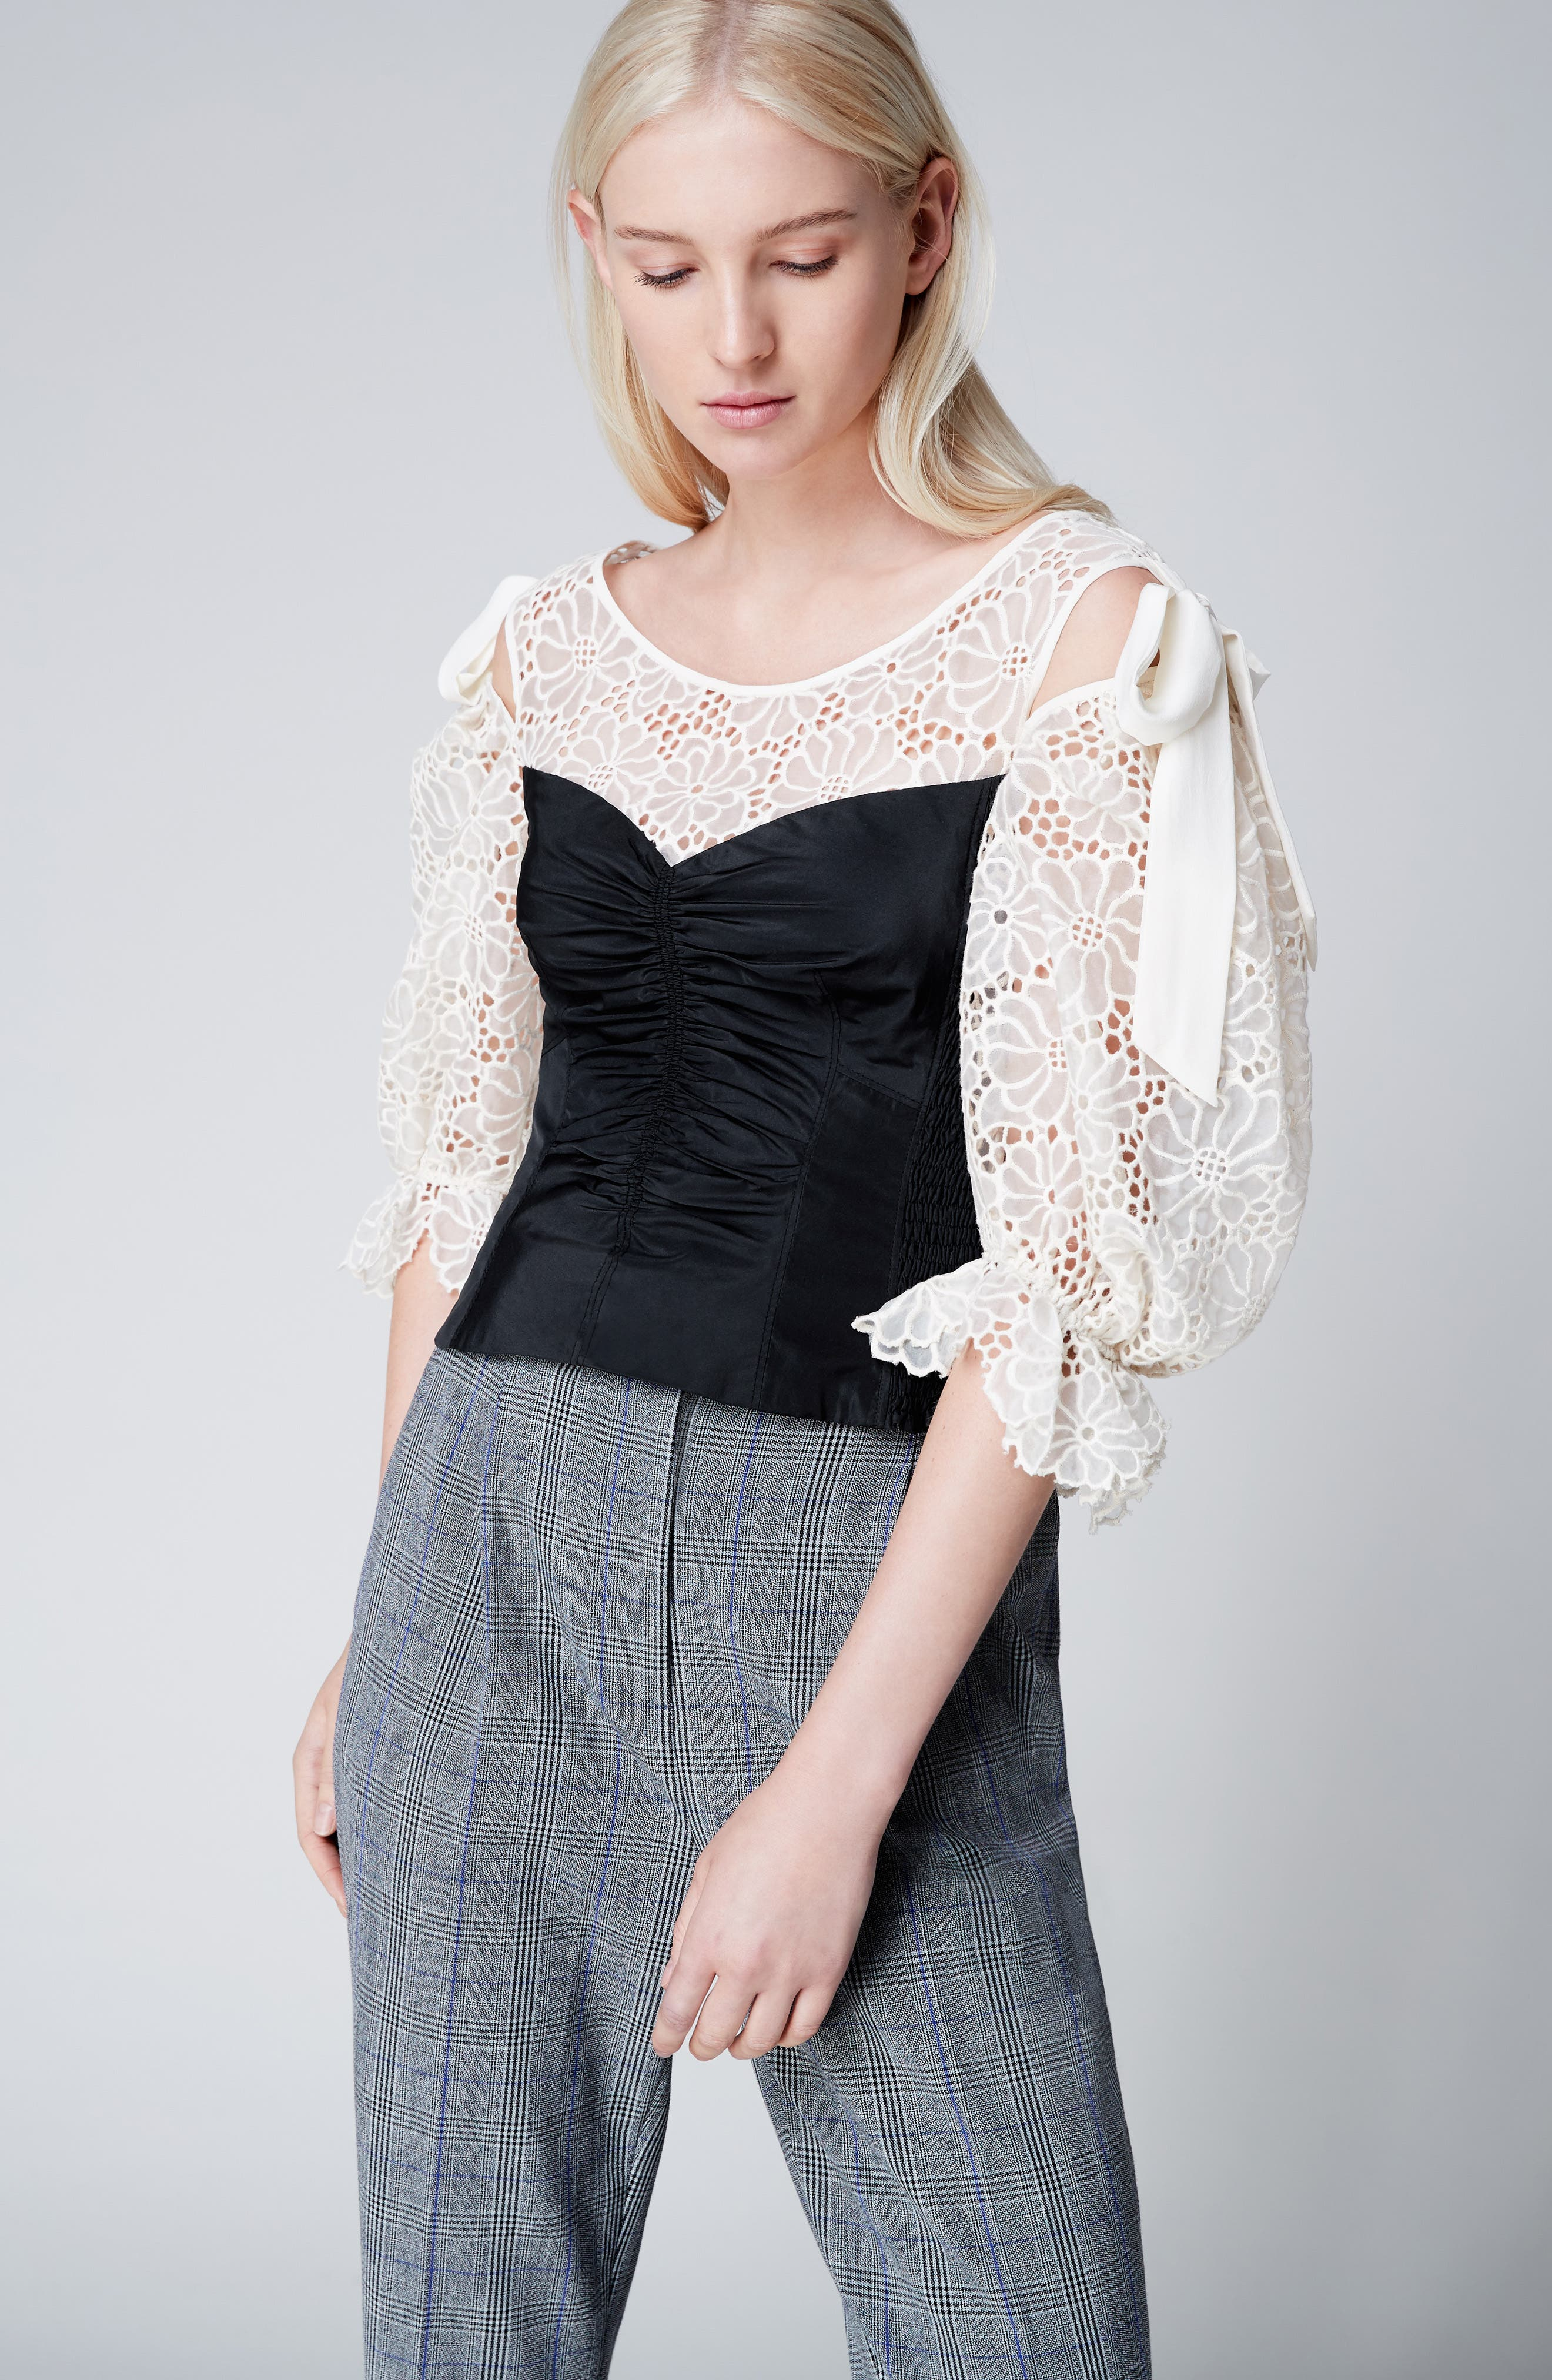 Malorie Embroidered Eyelet Top,                             Alternate thumbnail 7, color,                             114